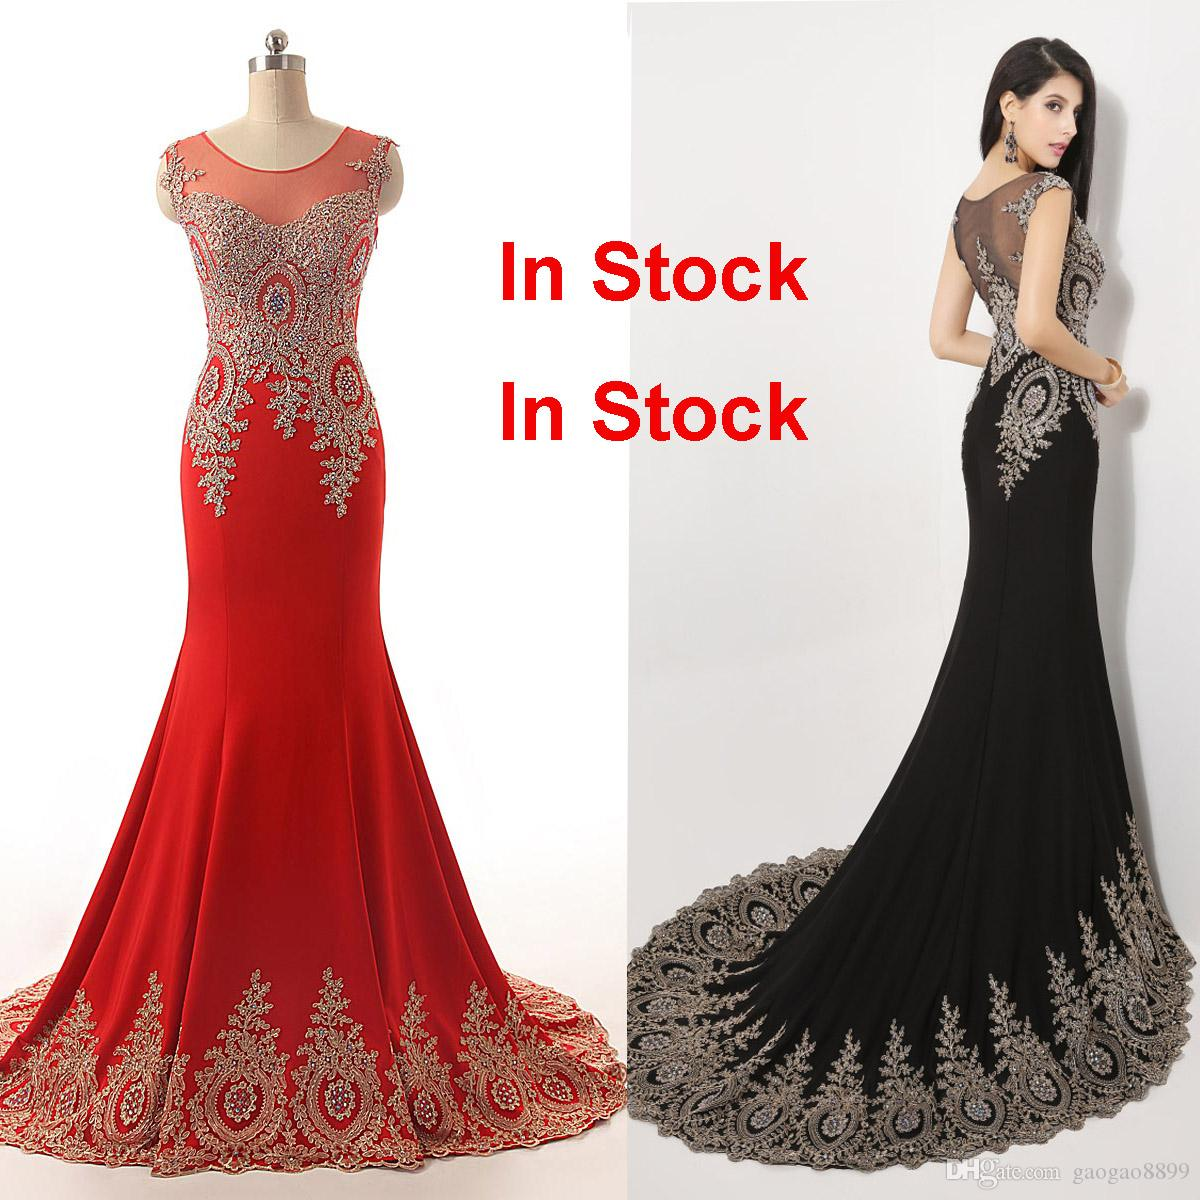 0159404fb4a92 Luxury Formal Evening Prom Party Dresses Red Black Mermaid Sheer Neck Crystal  Beads Celebrity Mother Gowns 2018 Real Image Arabic Evening Dresses  Wholesale ...